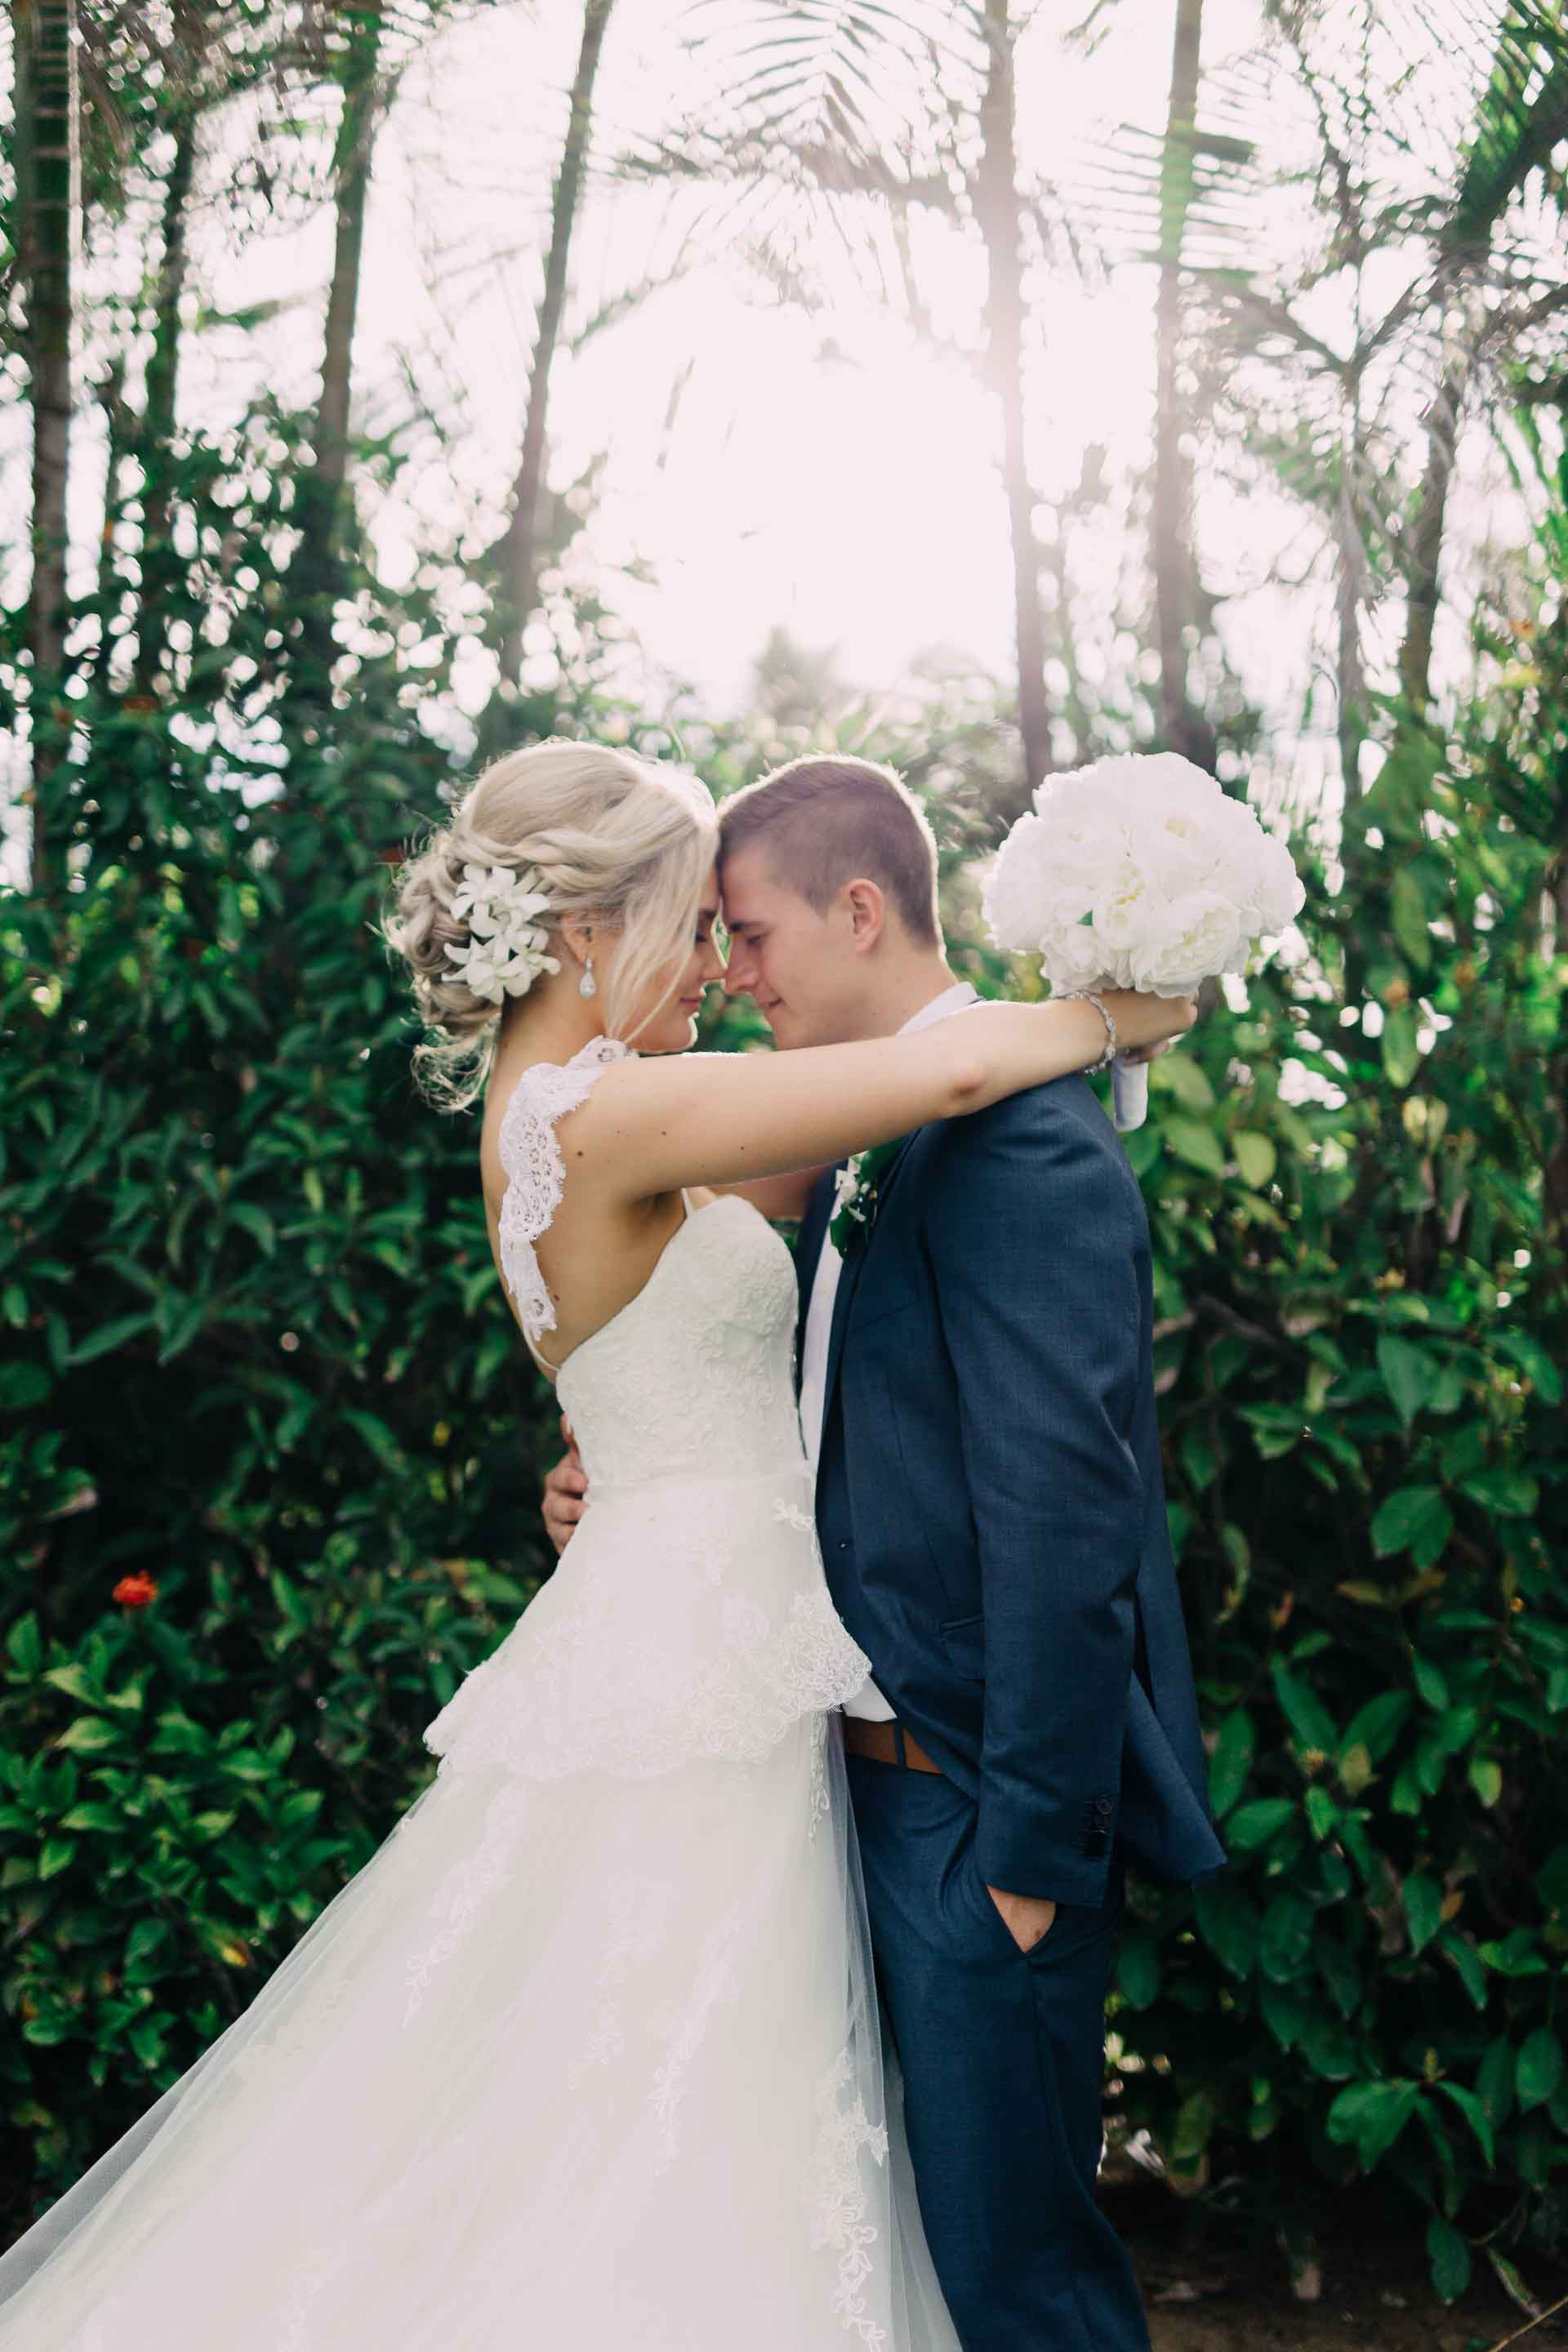 Stunning portrait of bride and groom beautiful white wedding dress and classic blue wedding suit tropical Fiji wedding at the Hilton.